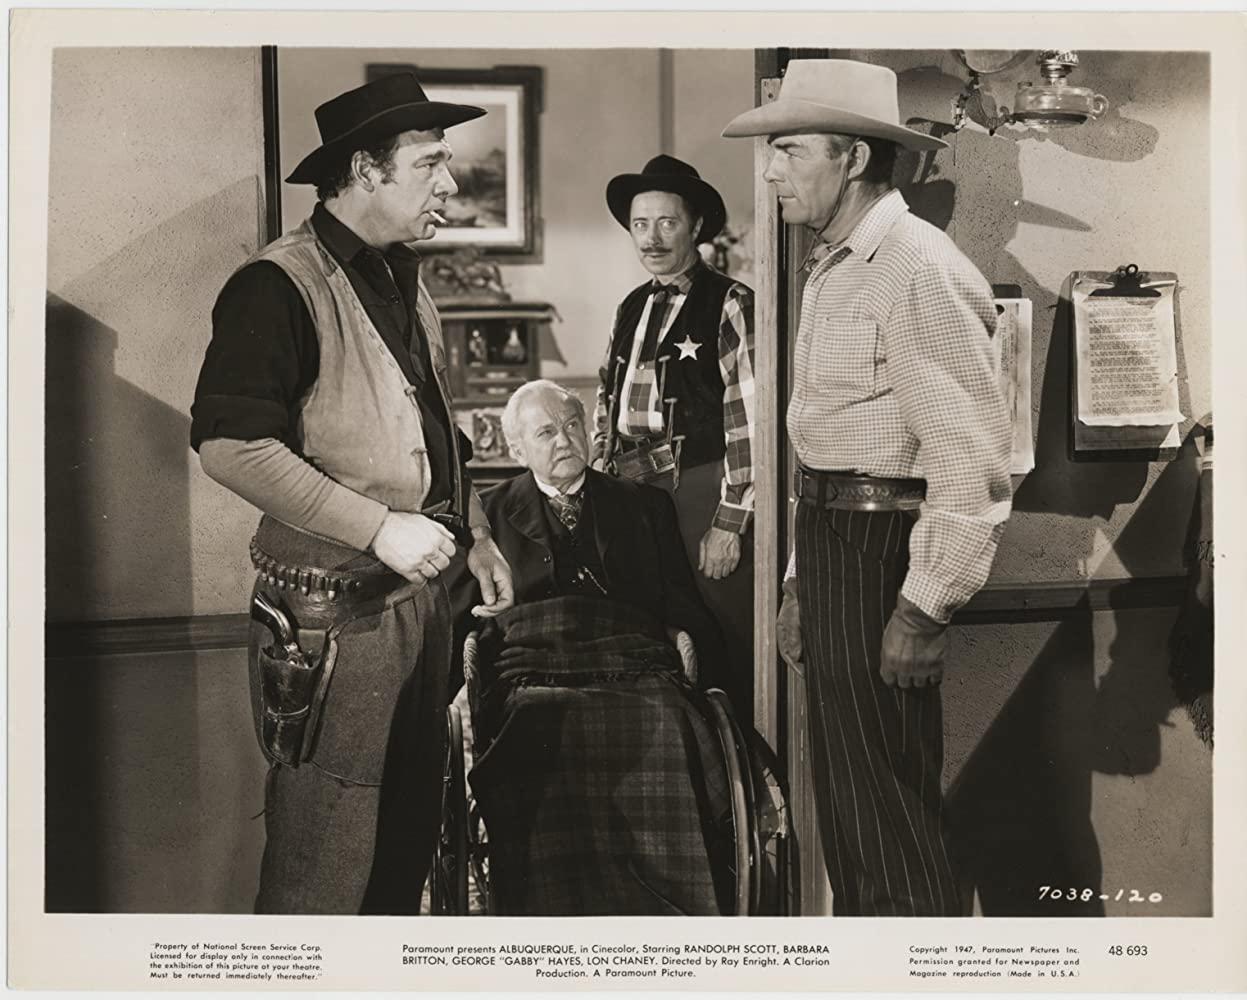 Randolph Scott, Lon Chaney Jr., George Cleveland, and Bernard Nedell in Albuquerque (1948)